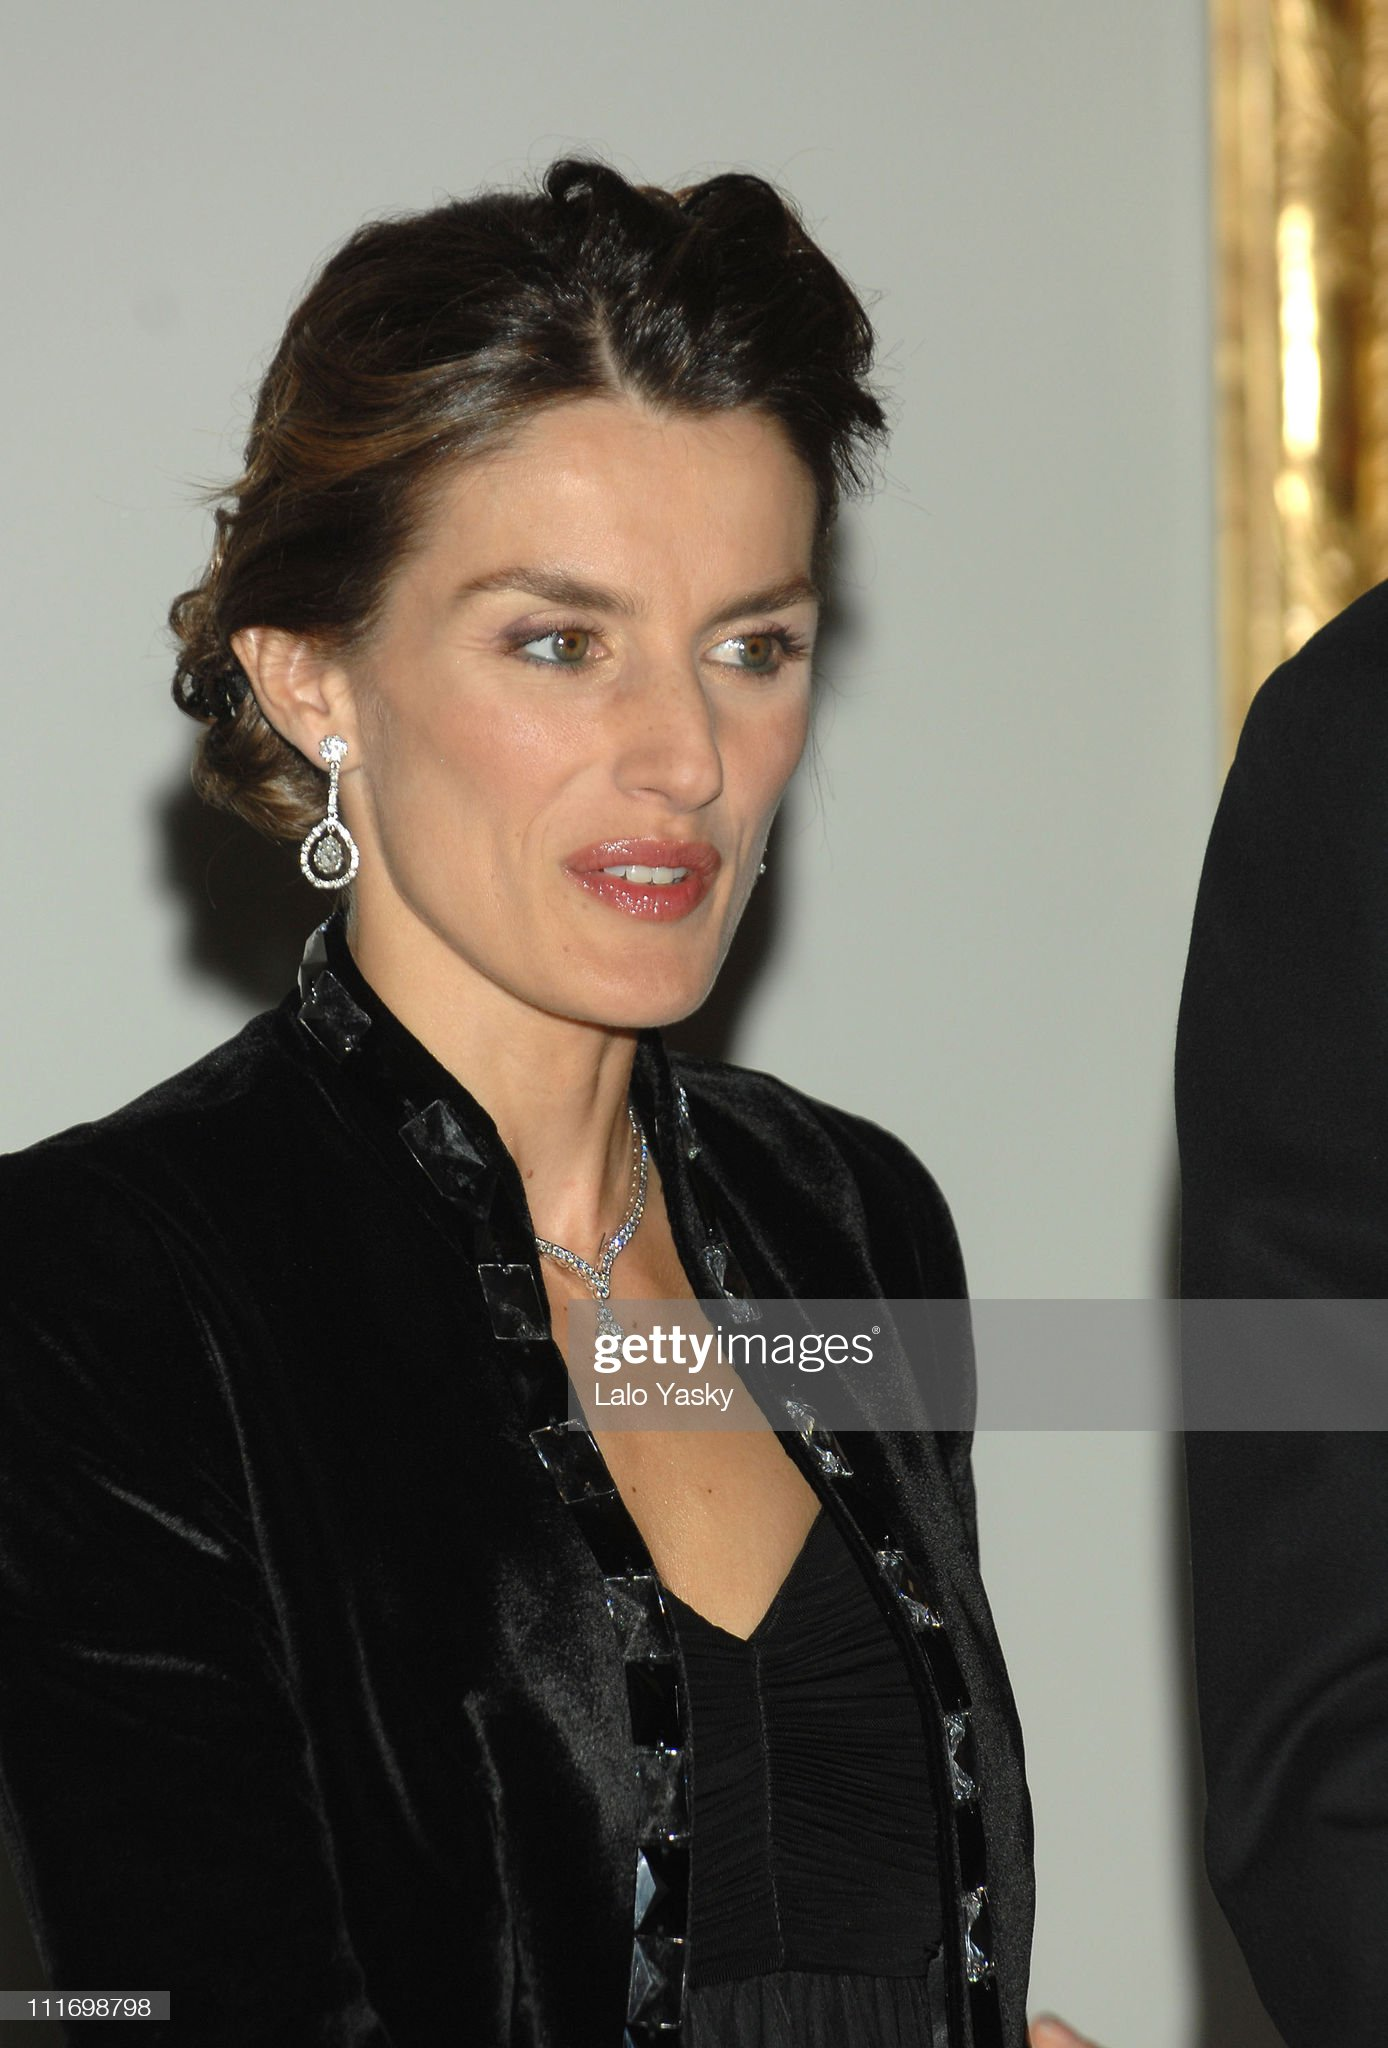 Spanish Royals Attend Opening Gala Dinner of Extension at El Prado Museum : News Photo